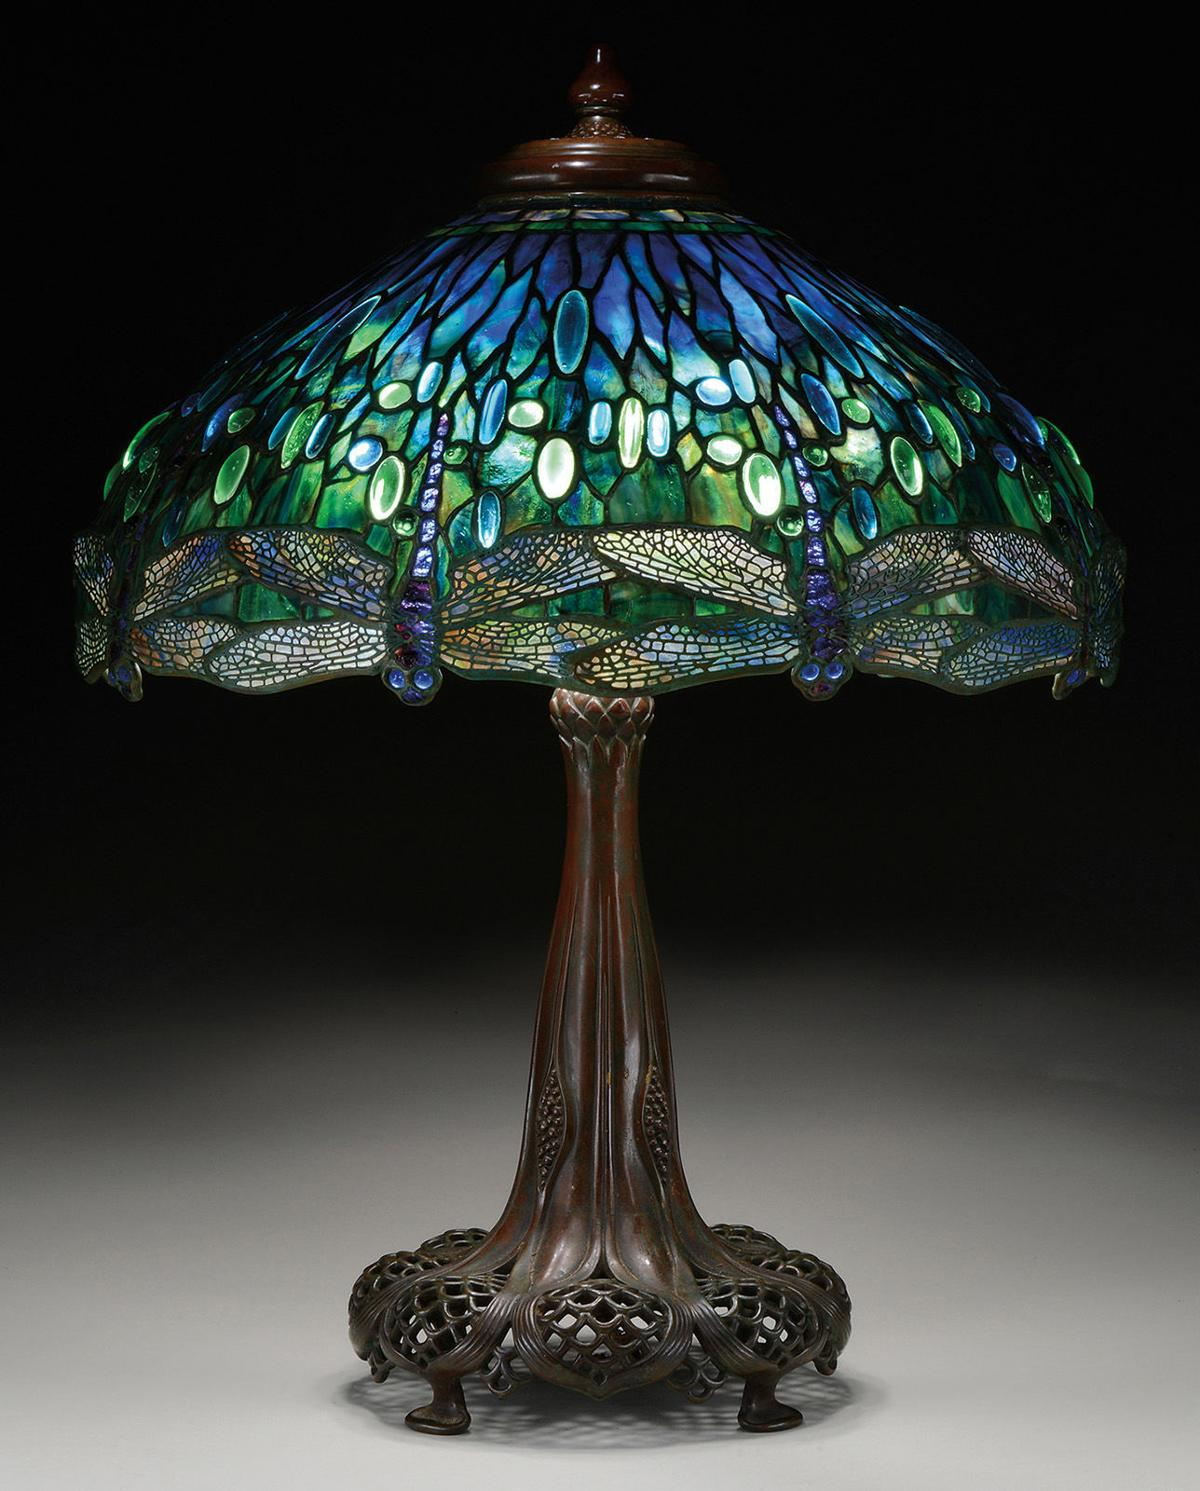 Tiffany Studios Dragonfly Table Lamp Sells For More Than